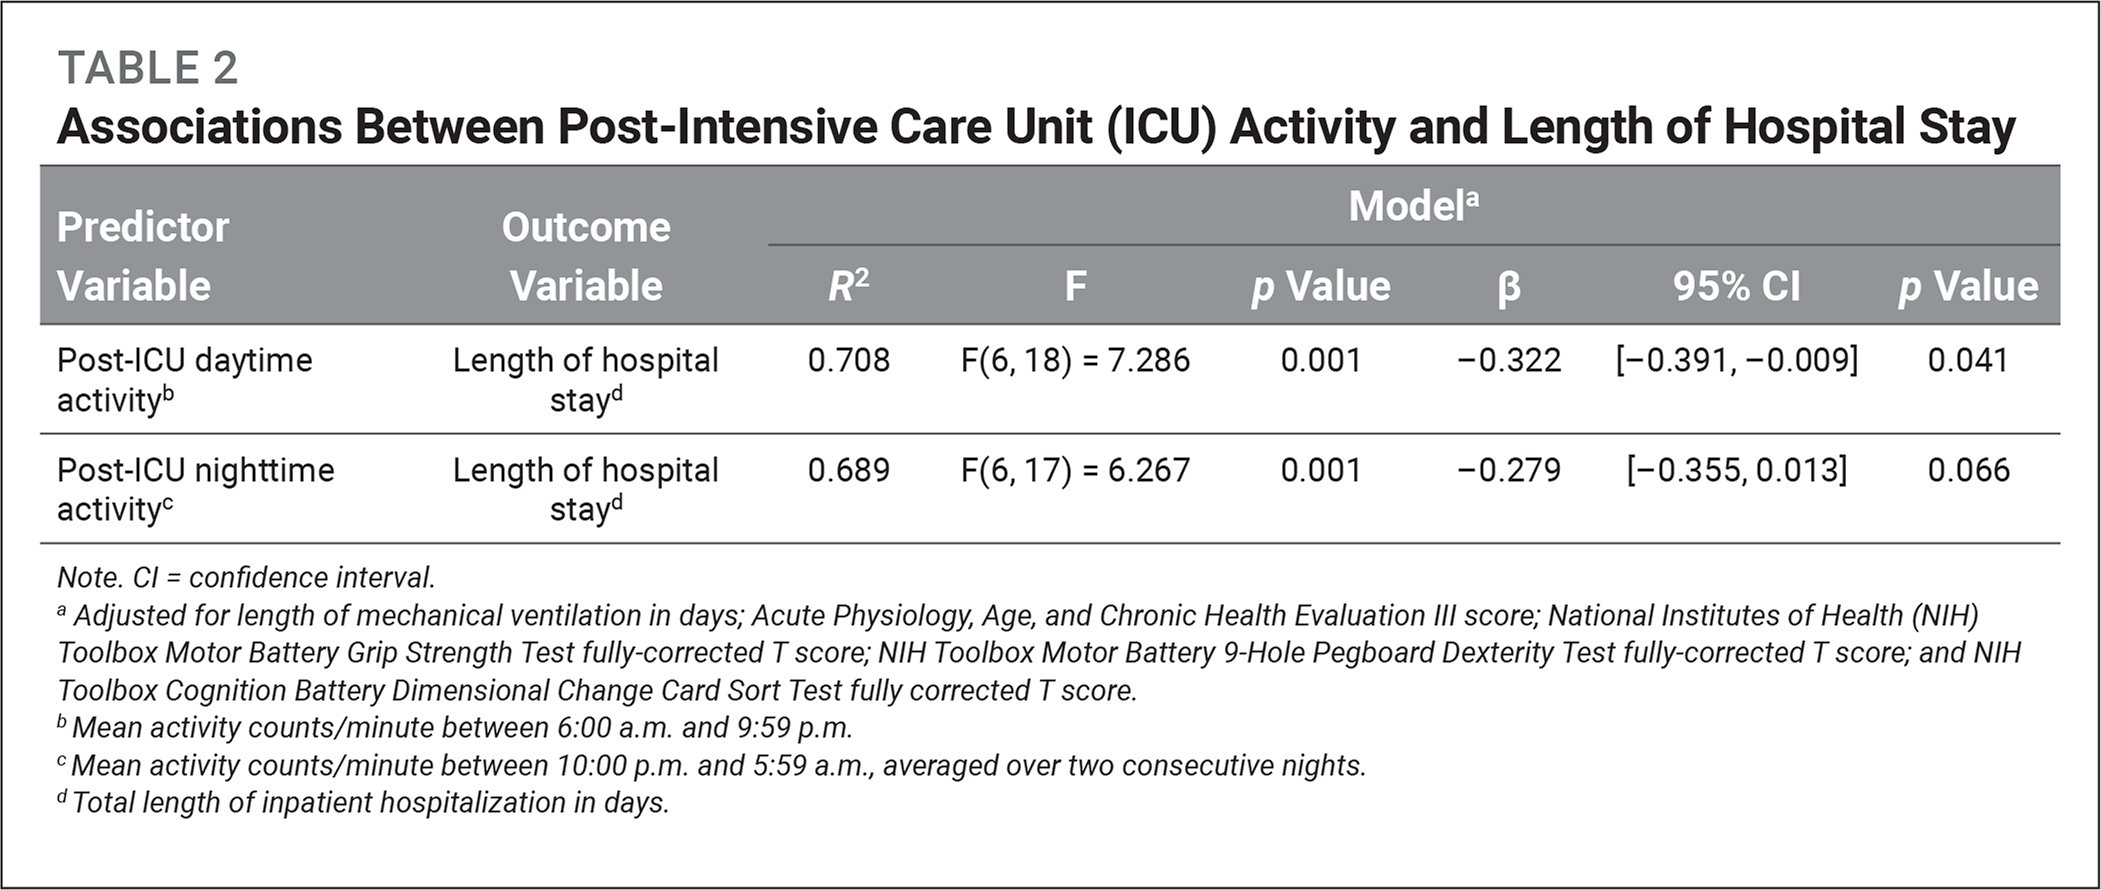 Associations Between Post-Intensive Care Unit (ICU) Activity and Length of Hospital Stay